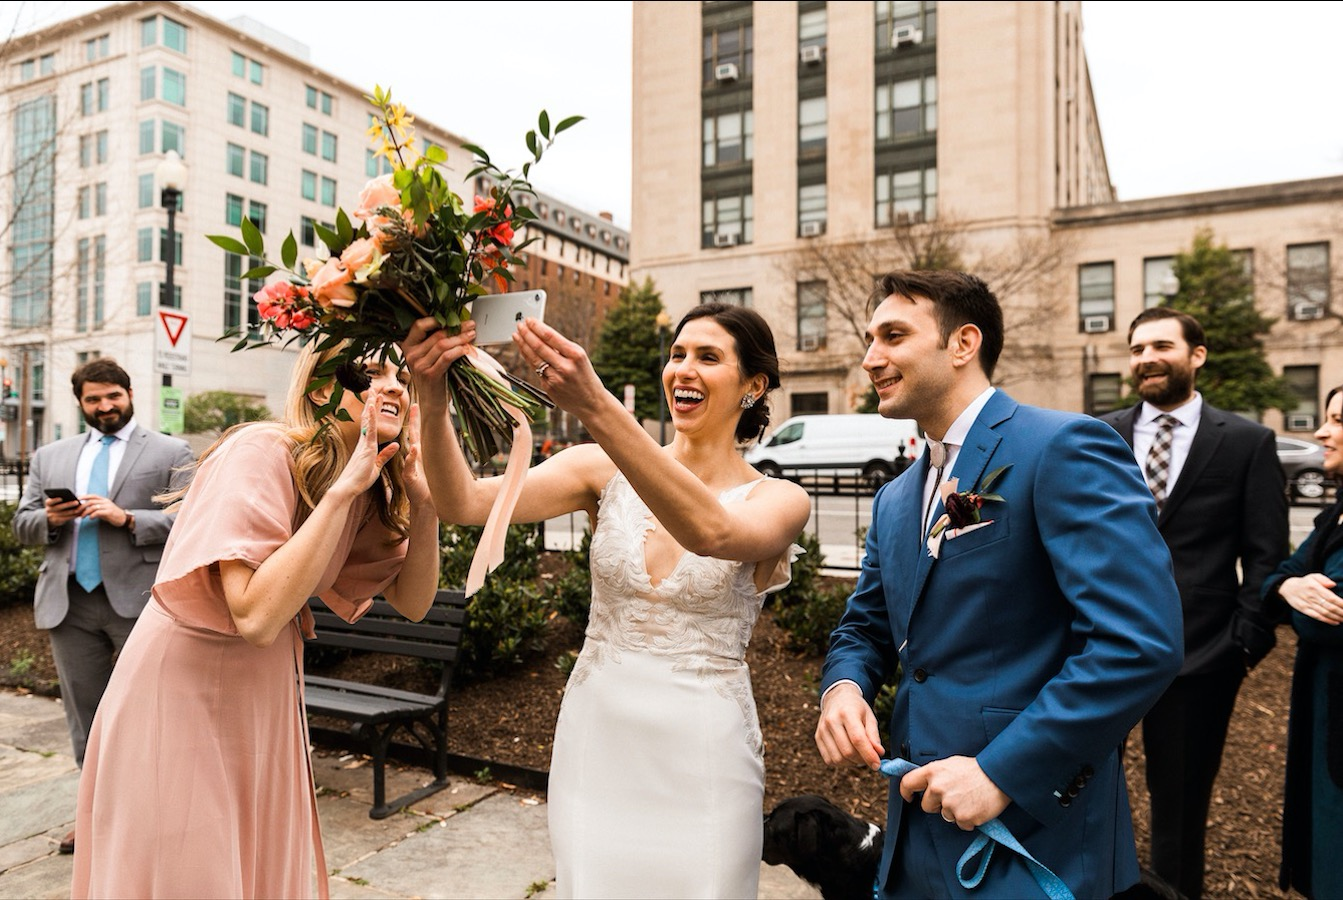 What You Should Know When Planning a Micro Wedding